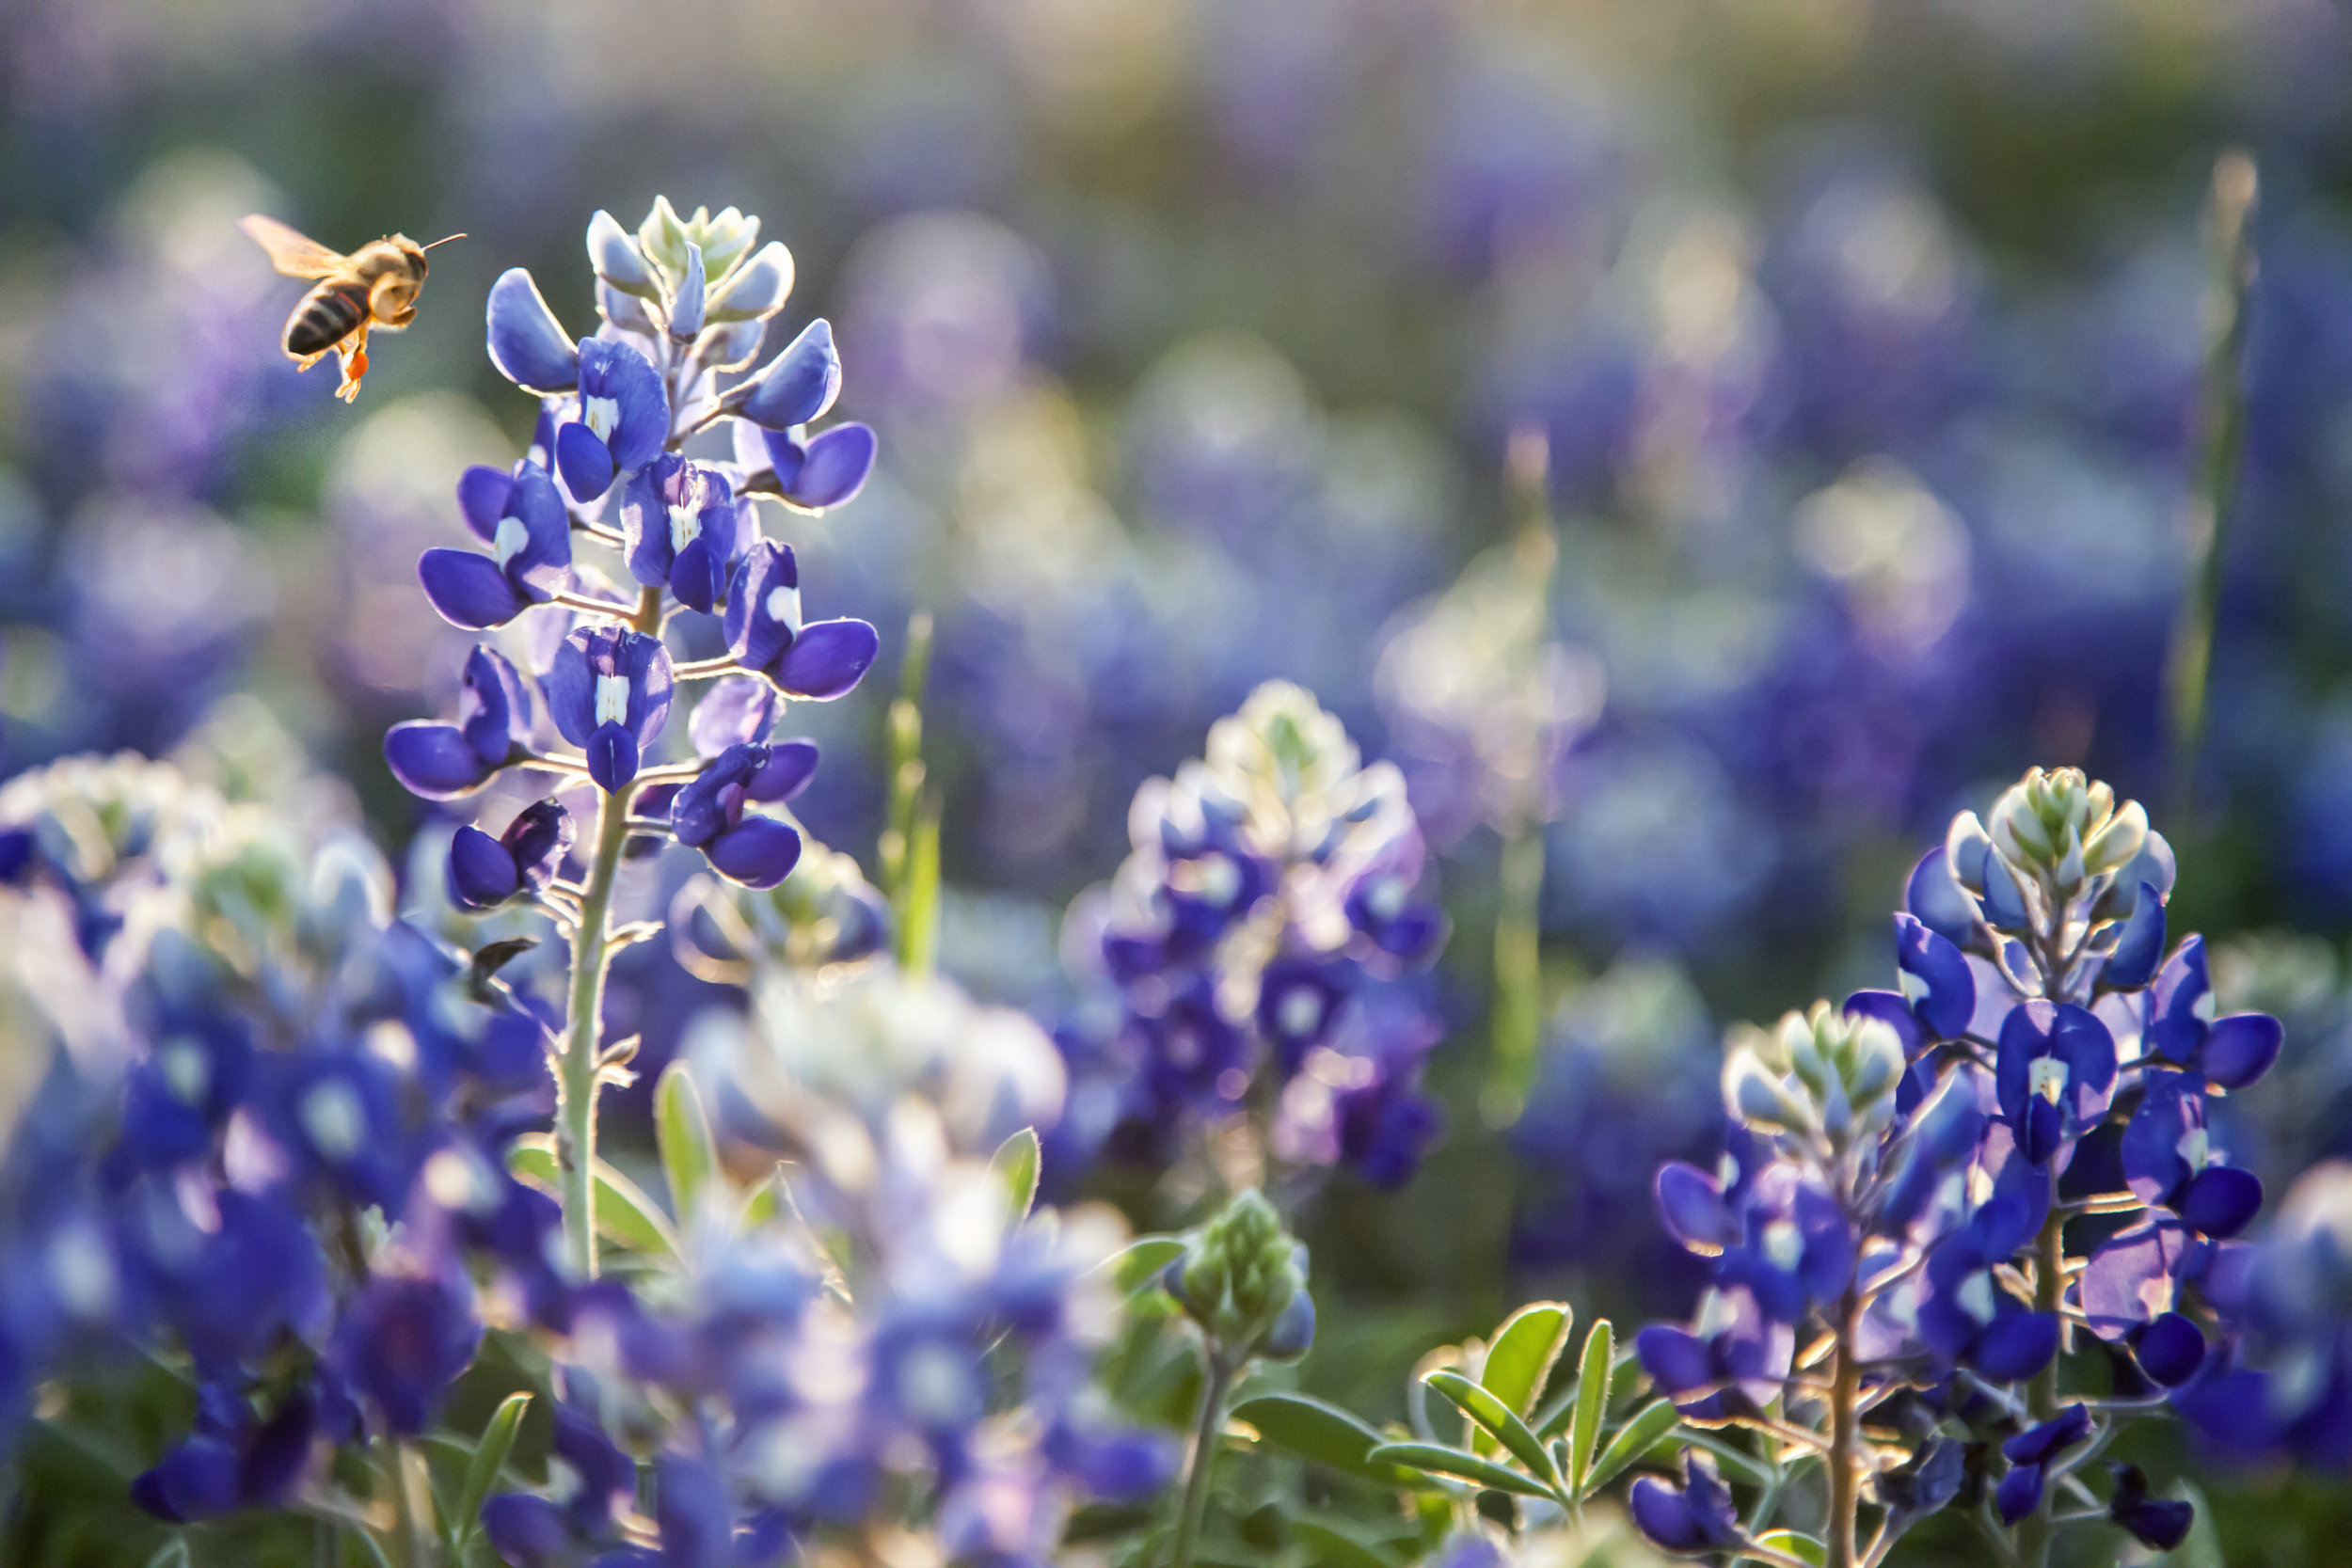 There's a tiny world among the bluebonnets. Get close to see it in action. Just watch your step! Image credit : Jason Weingart